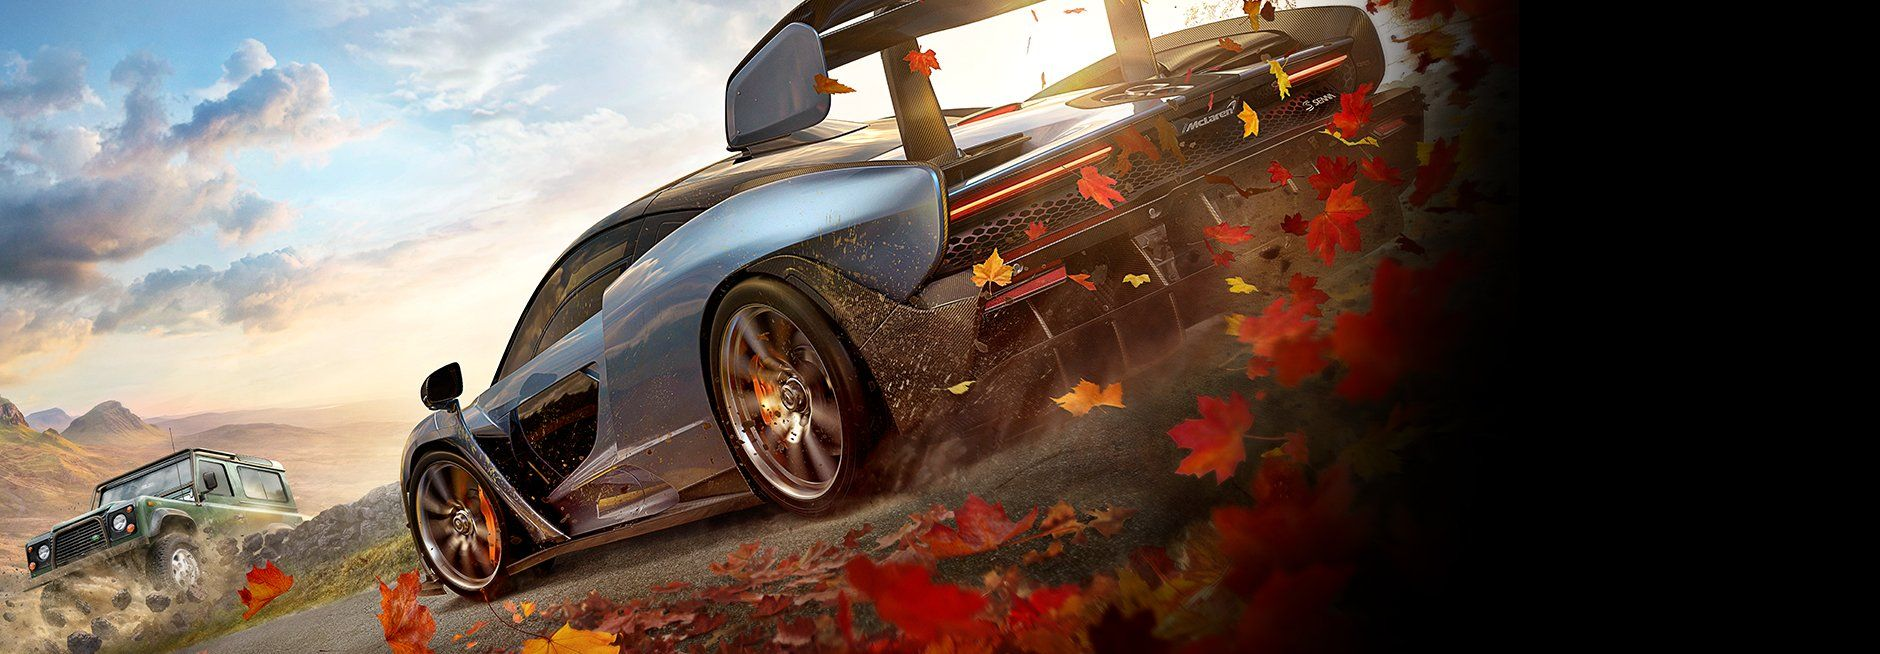 Forza Horizon 4 Standard Edition A Xbox One See The Photo Link Even More Details This Is An Affiliate Link Creative Xbox One Forza Horizon 4 Forza